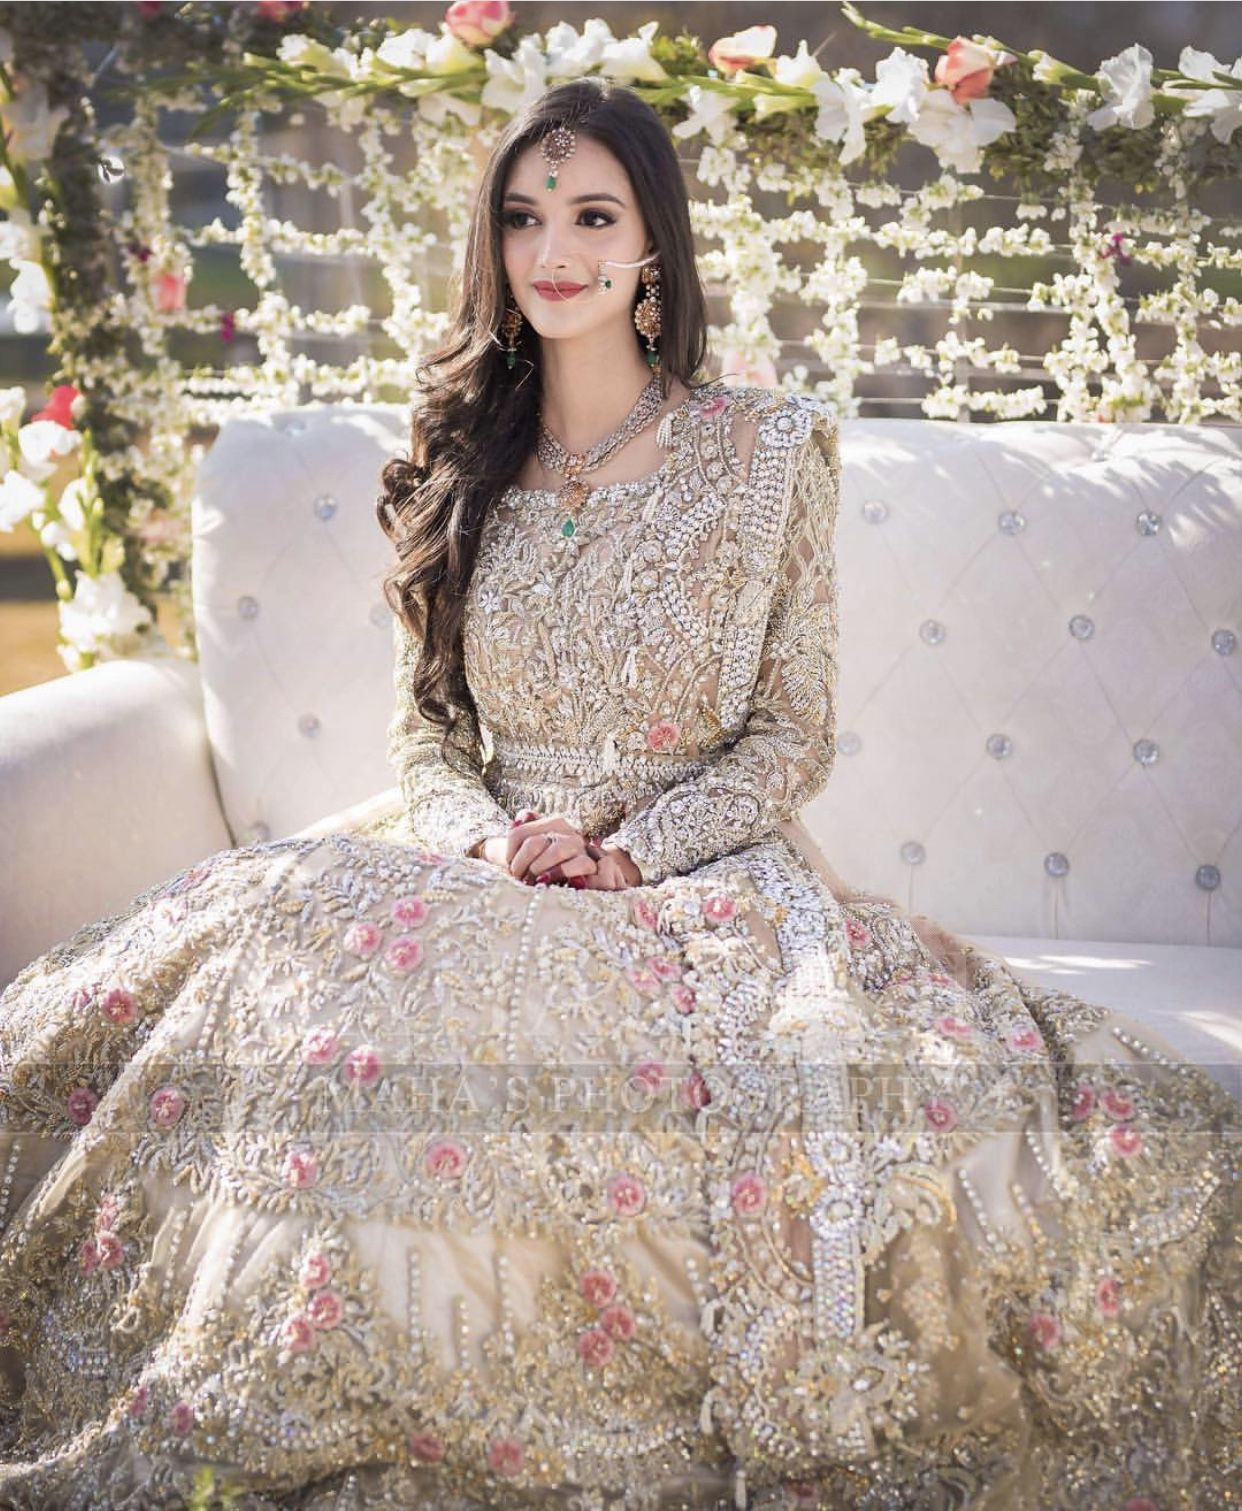 Pin by Hira P on Wedding in 2019 | Bridal dresses ...